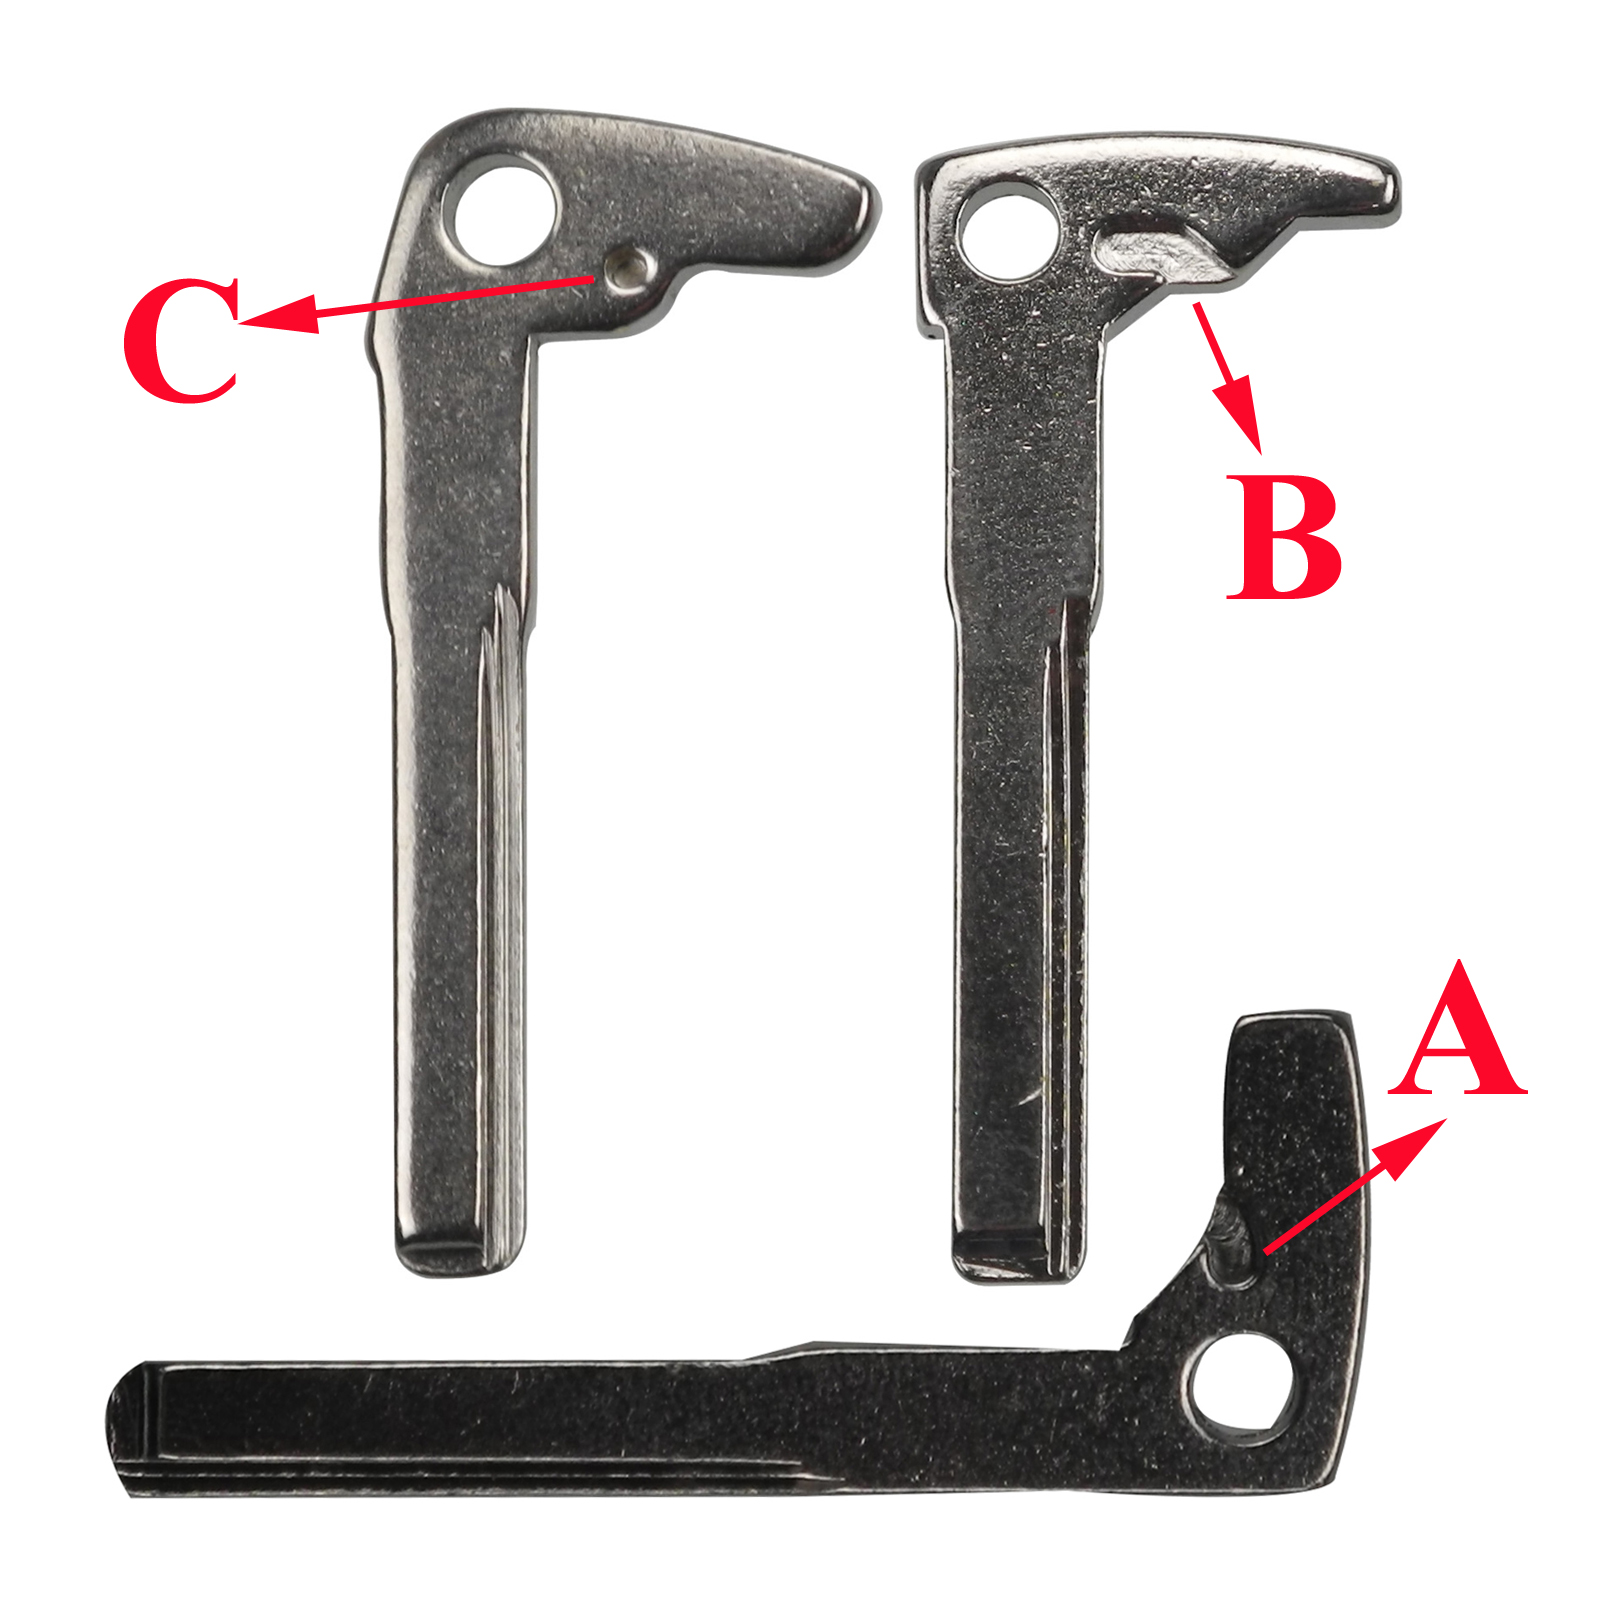 qualitykeylessplus Smart Insert Key Replacement for Toyota Remote Blank Uncut Blade with Free KEYTAG